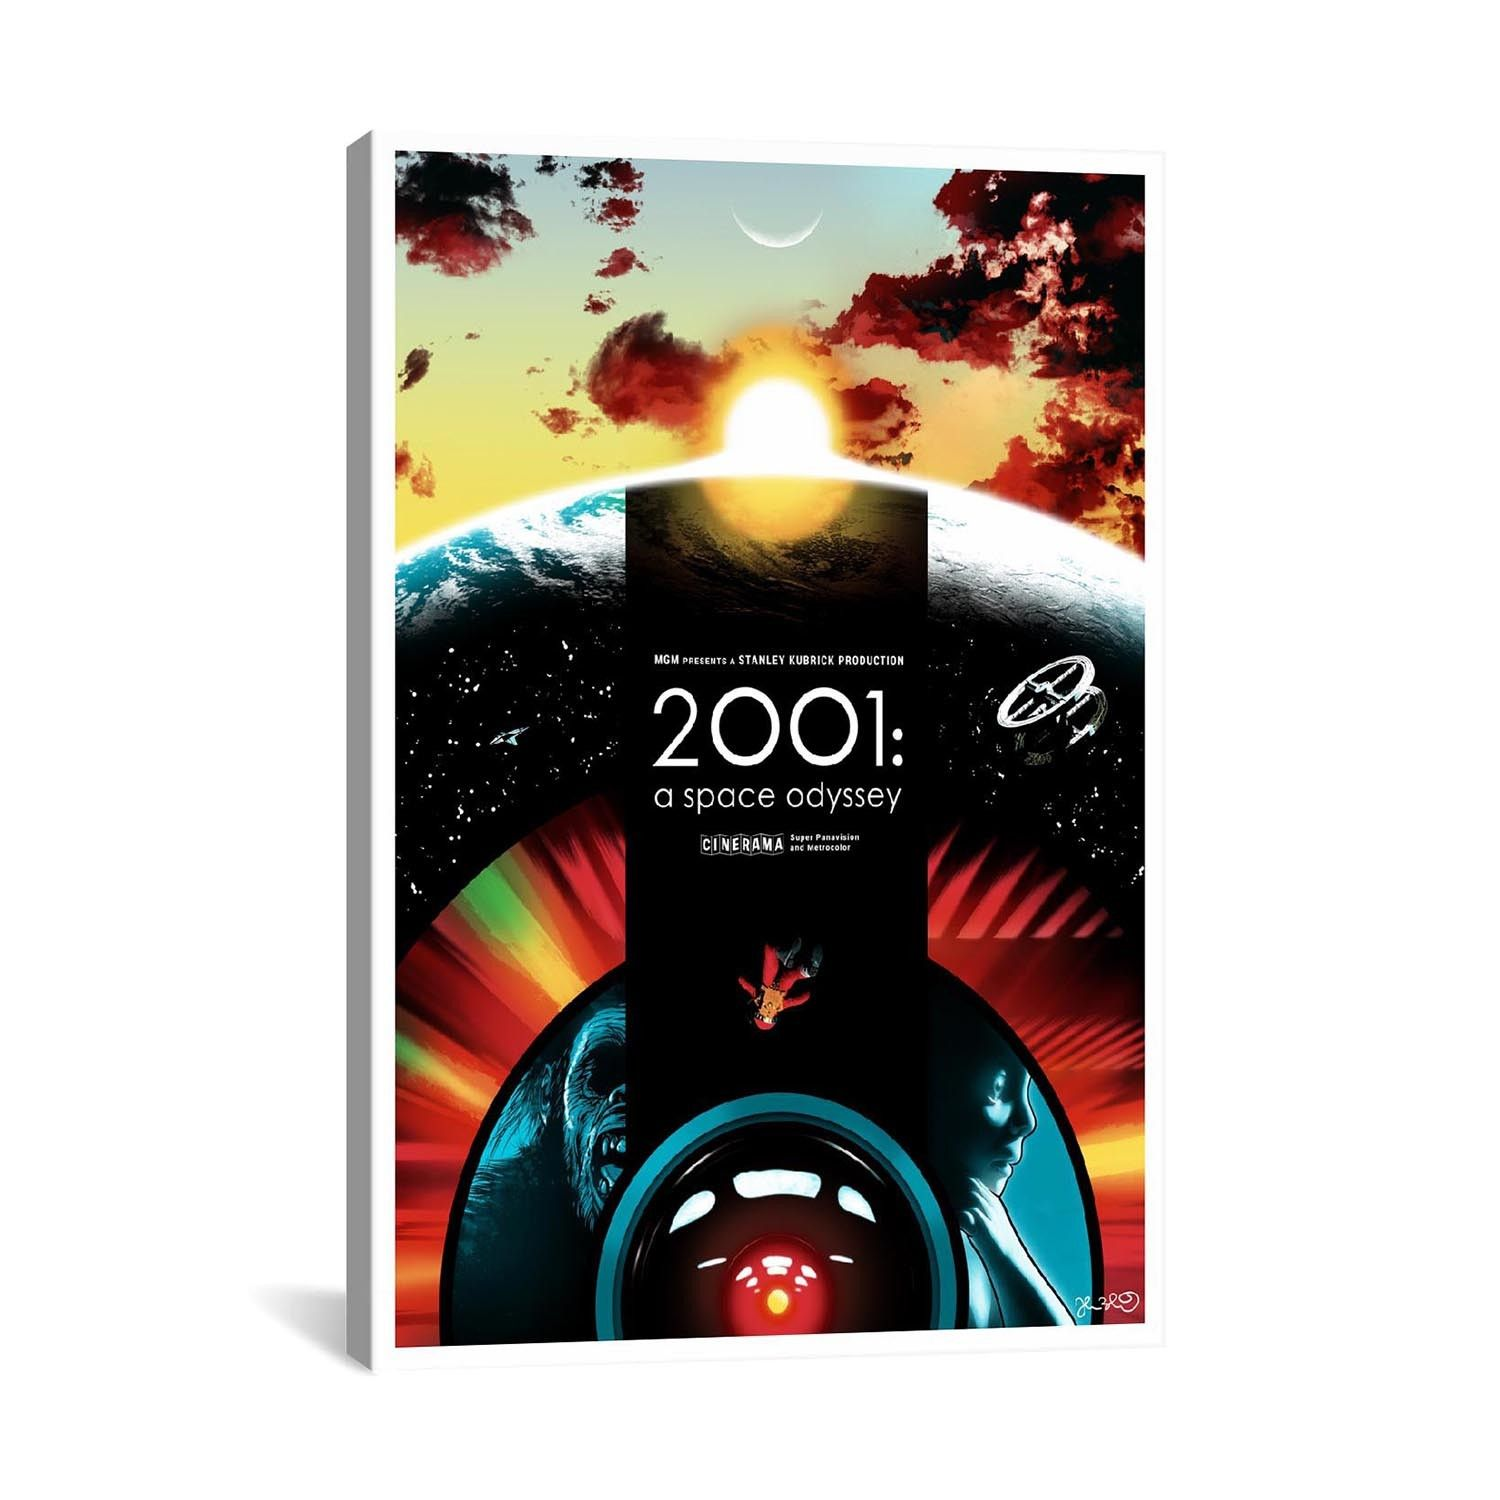 2001: A Space Odyssey Pay tribute to your favorite icons of music and cinema, with this collection of colorful prints by Joshua Budich. Faithfully reproduced on top-quality canvas, e...